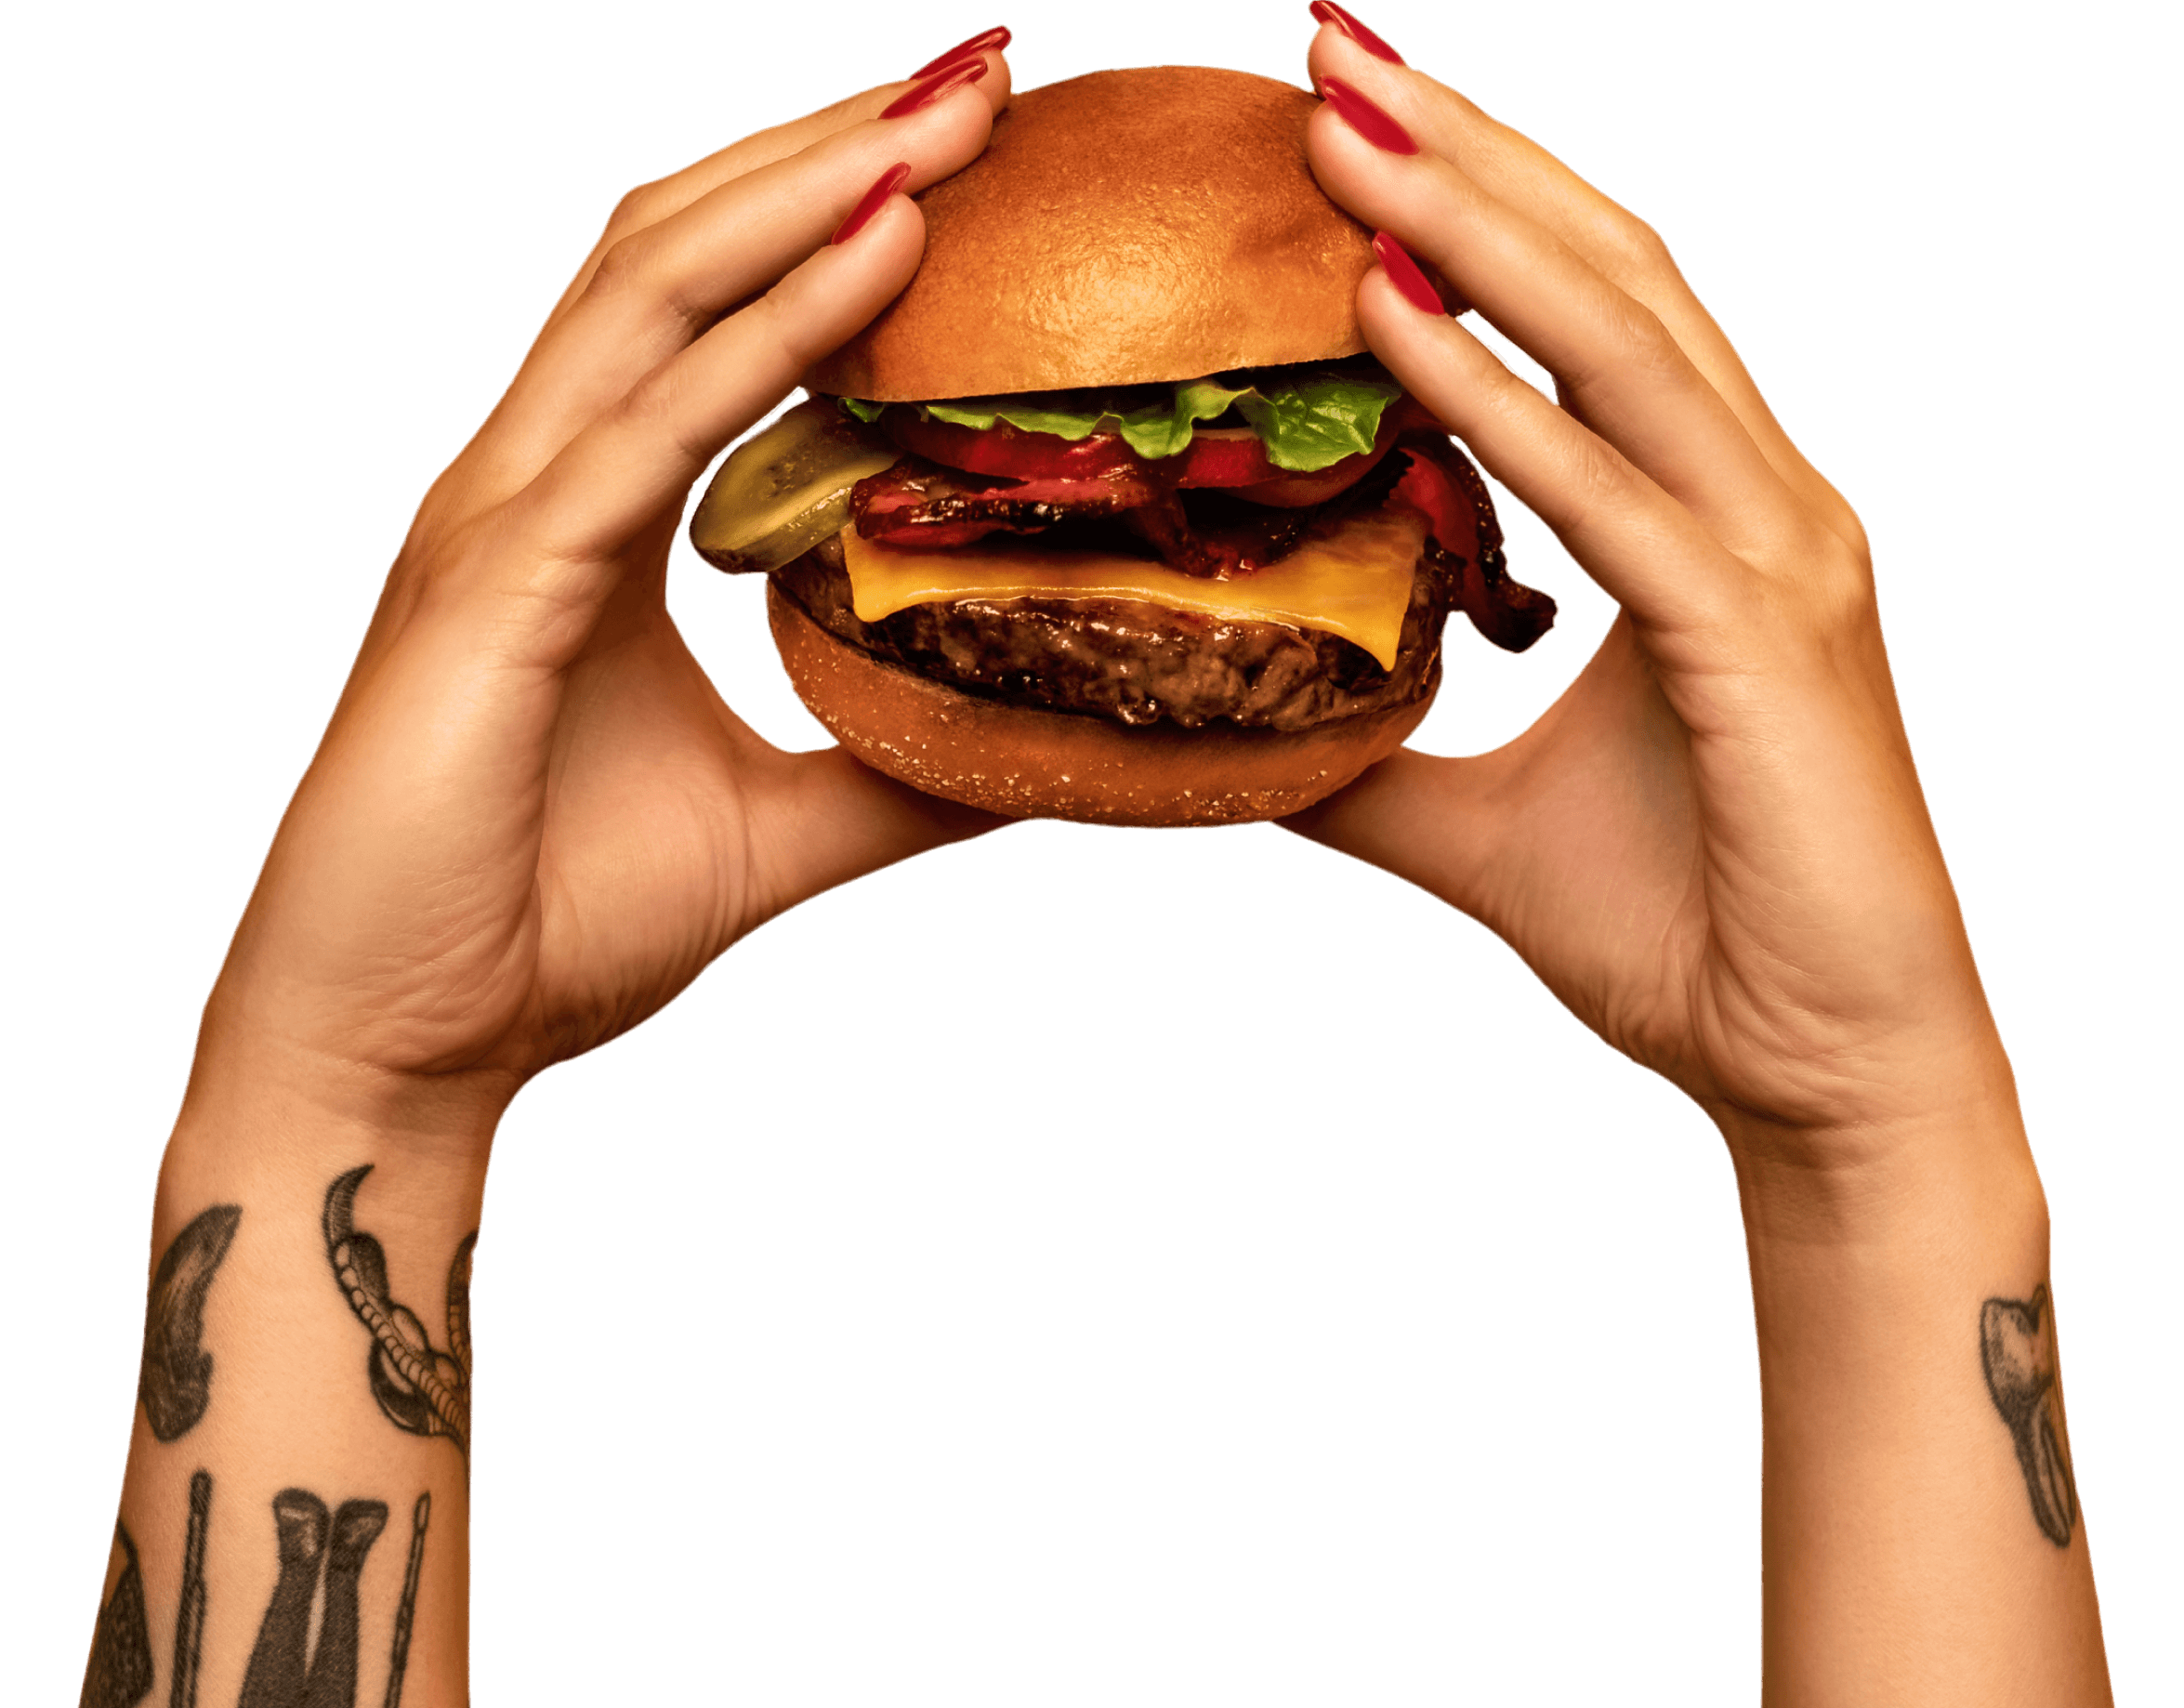 two hands holding a hamburger